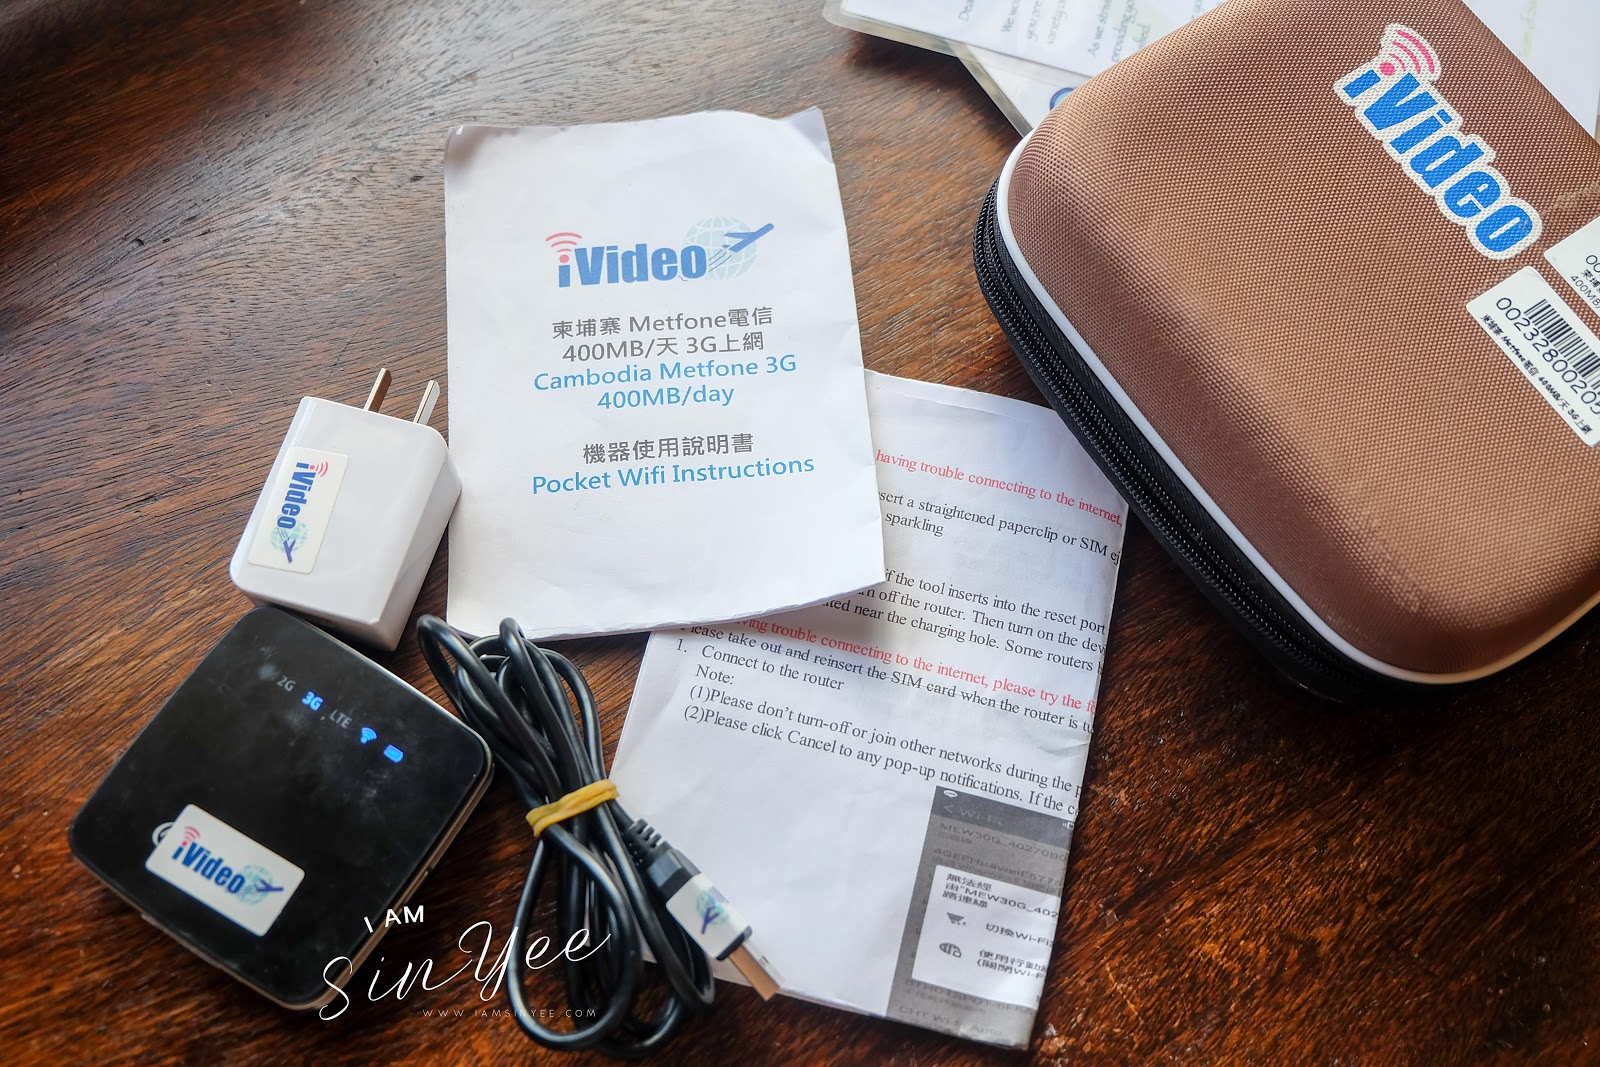 Stay Connected When Apart~ iVideo Pocket Wifi, Anywhere